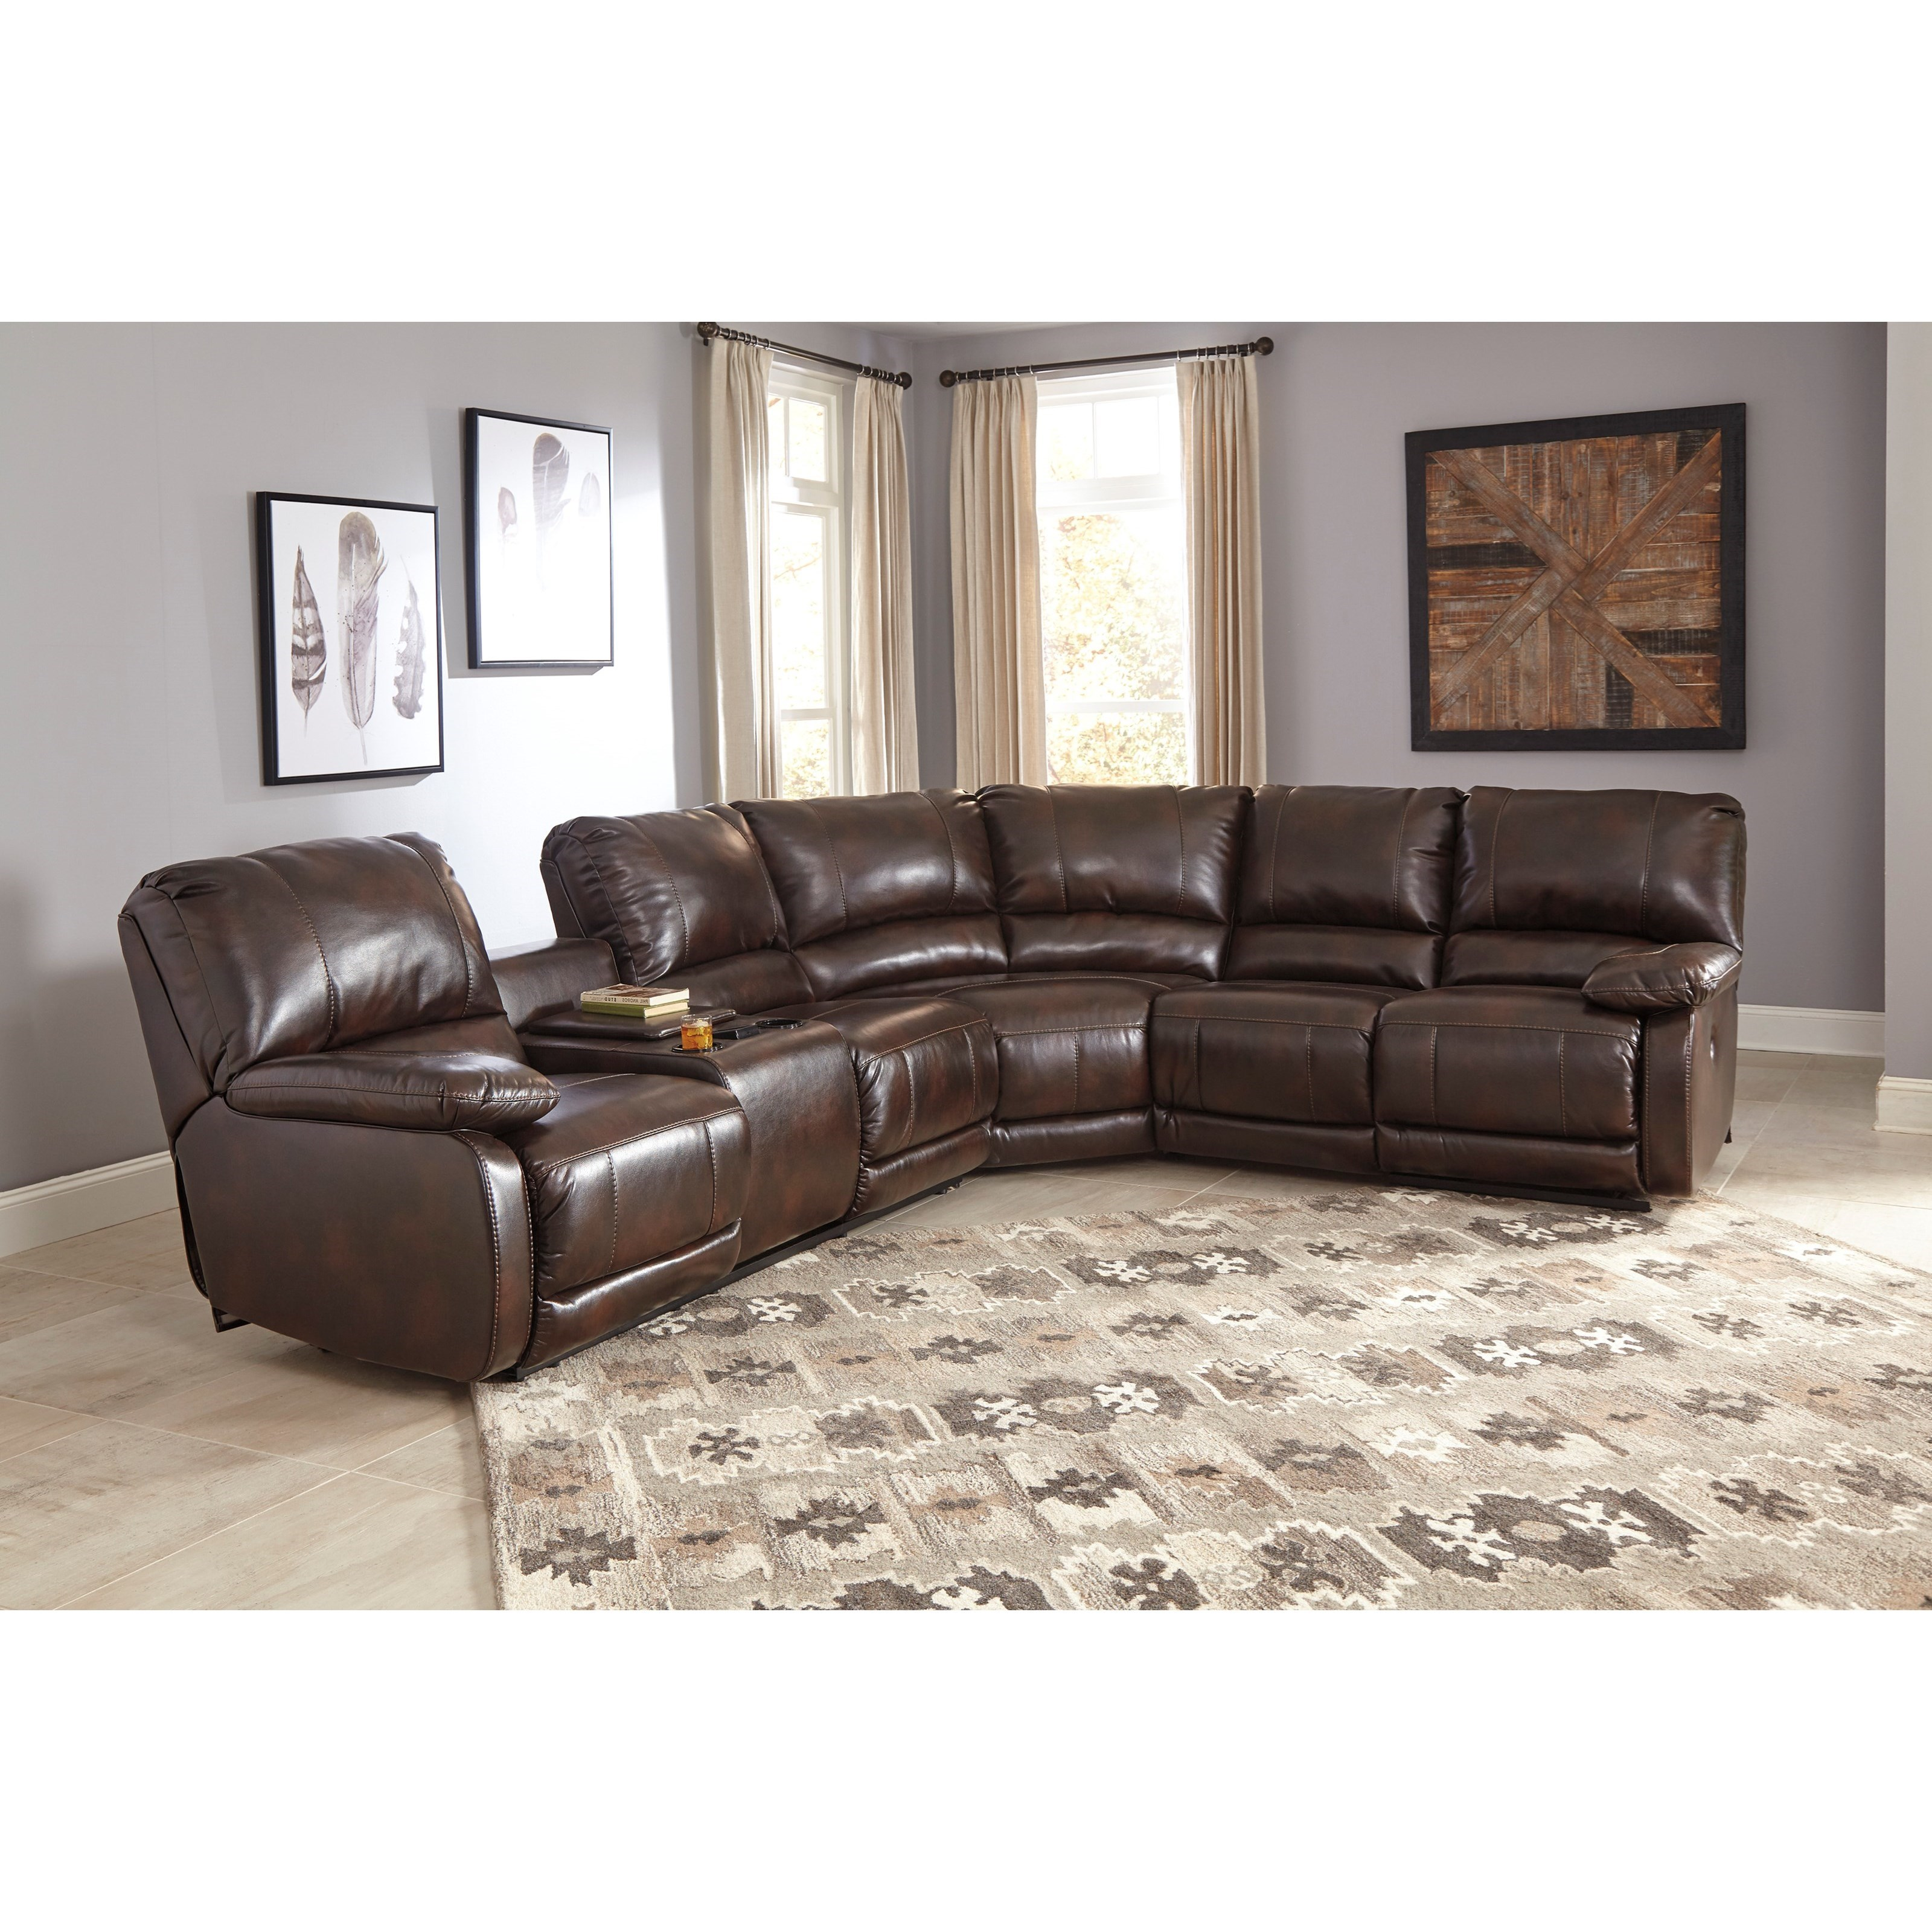 sofa size sofas best leather sectional living ideas julius elegant new inspirations of lovely reclining rooms closeout full collection interior power chaise